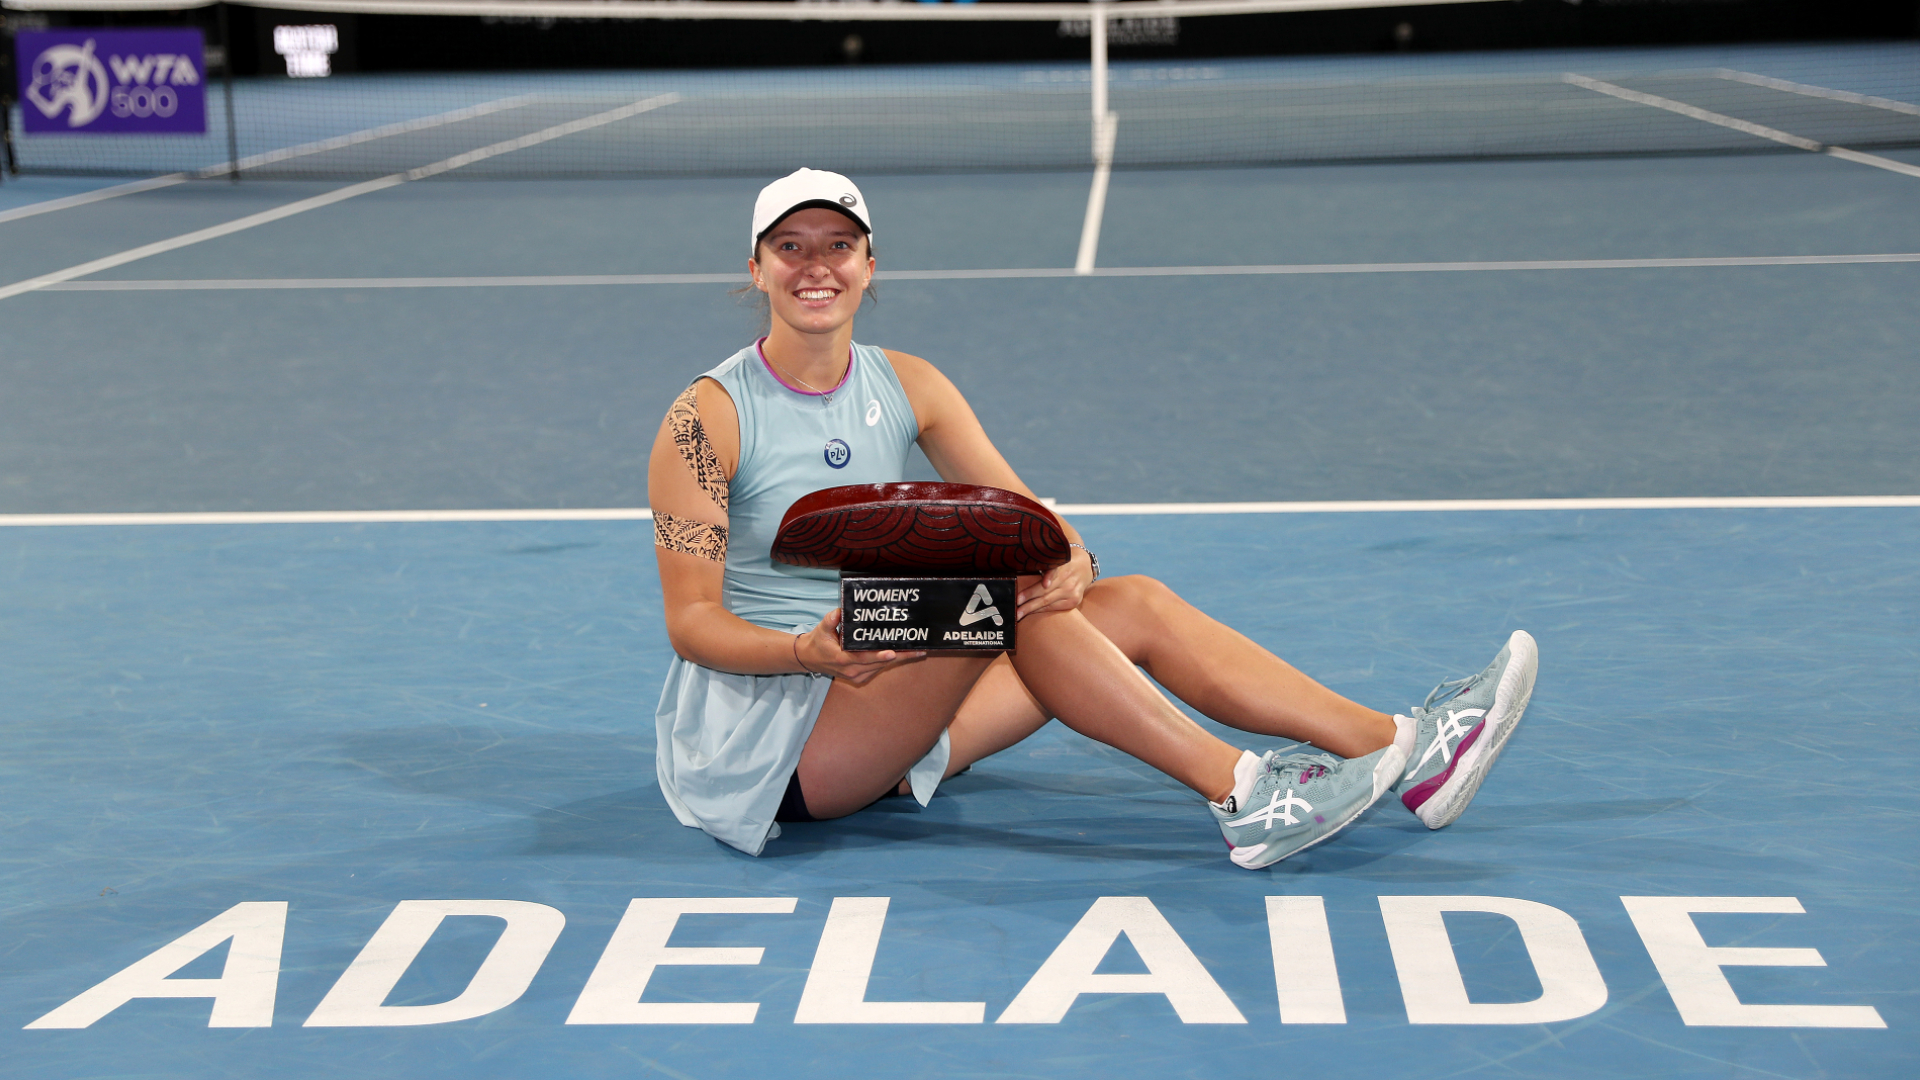 Swiatek soars to Adelaide title as French Open champion wins again